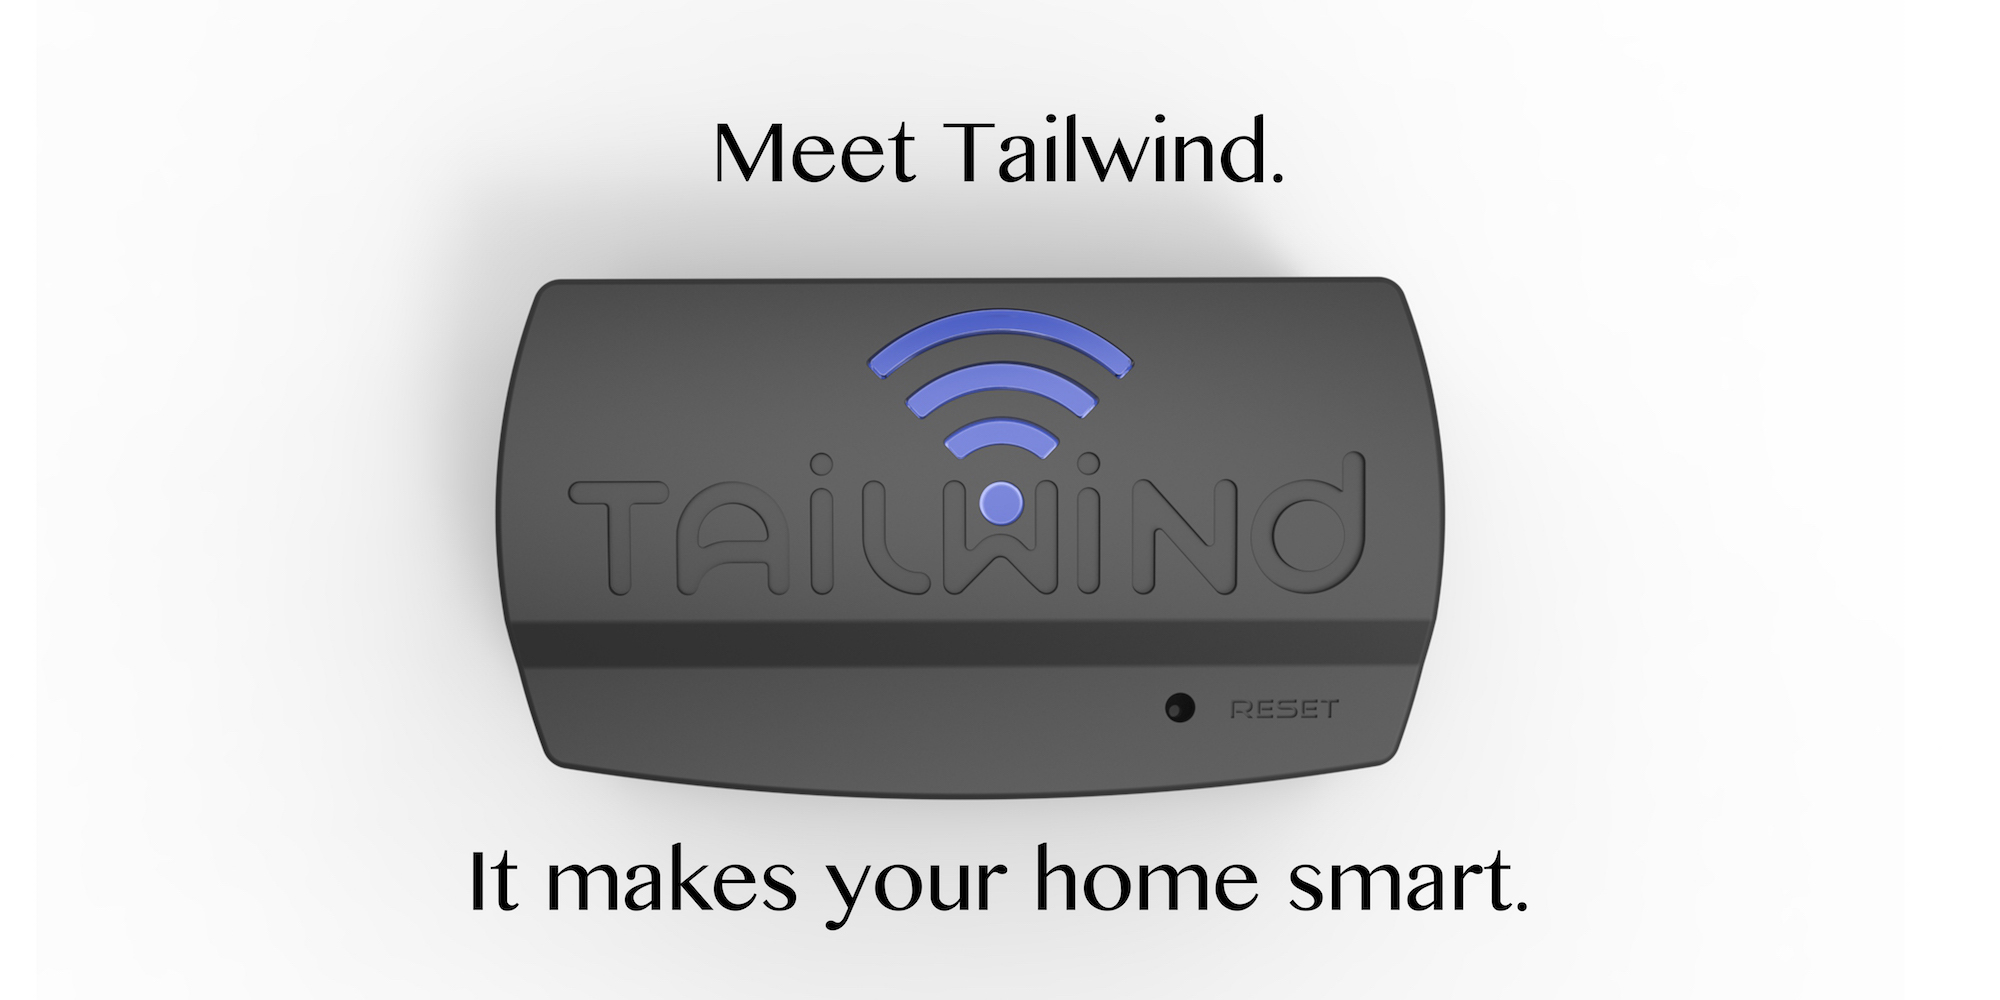 Tailwind Launches Tech Gadget for Smart Home Automation on ...